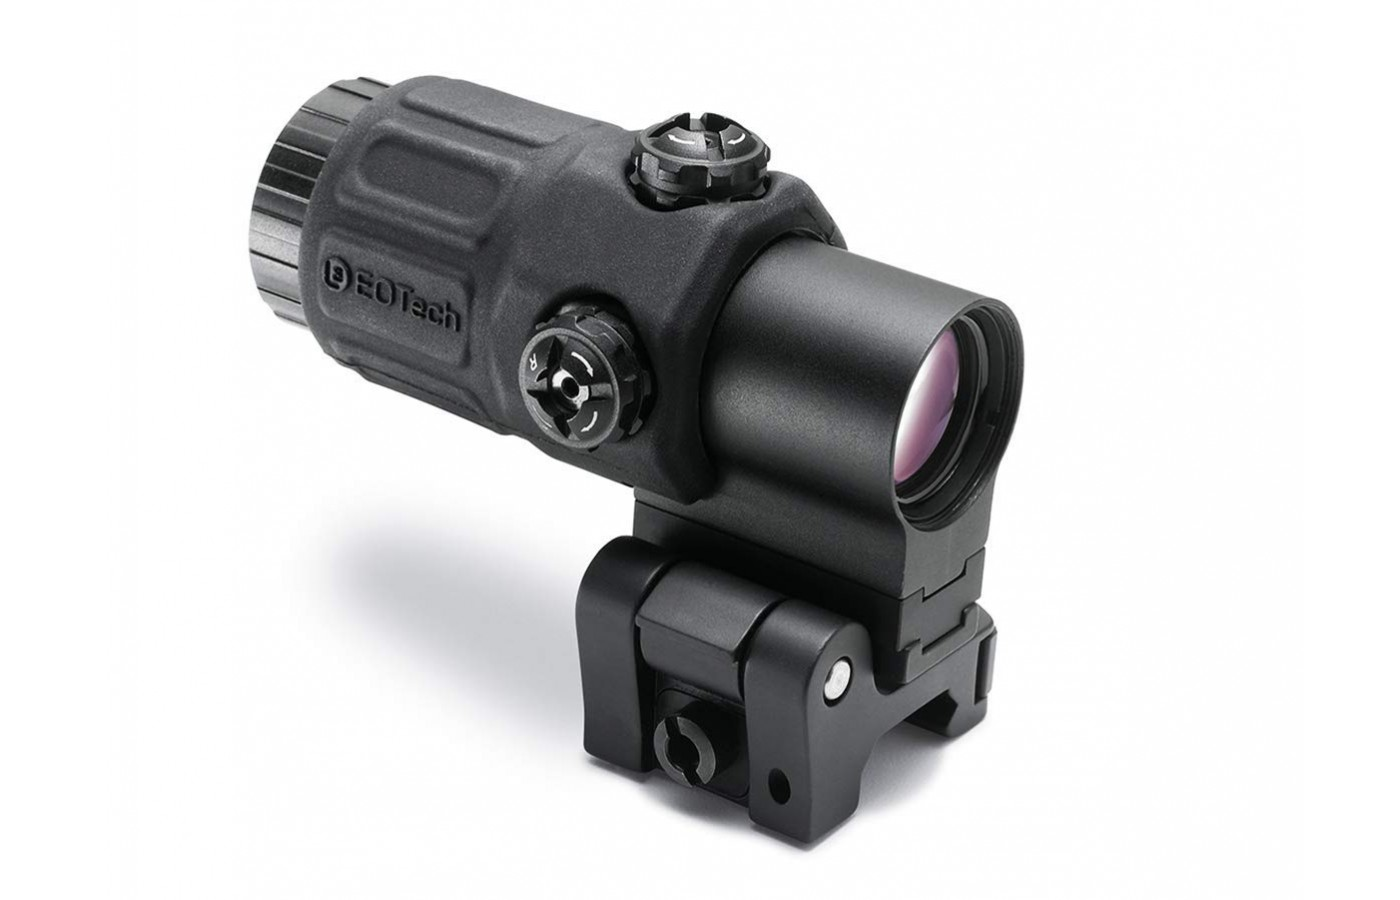 EOTech Magnifier can be used to increase long distant clarity